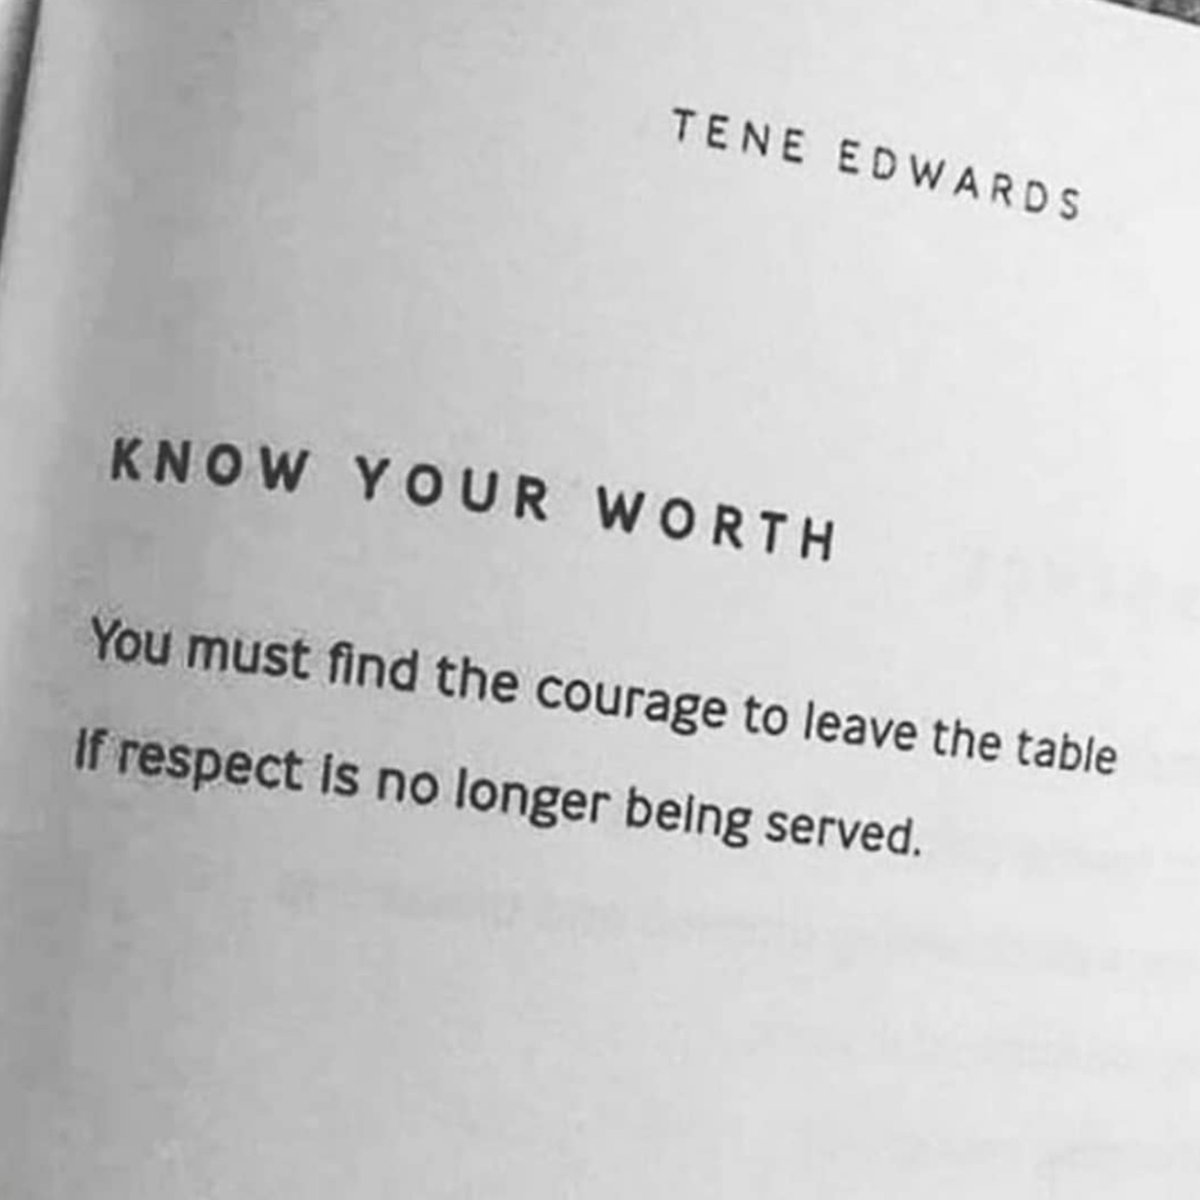 you must find the courage to leave the table if respect is no longer being served, know your worth, ten edwards